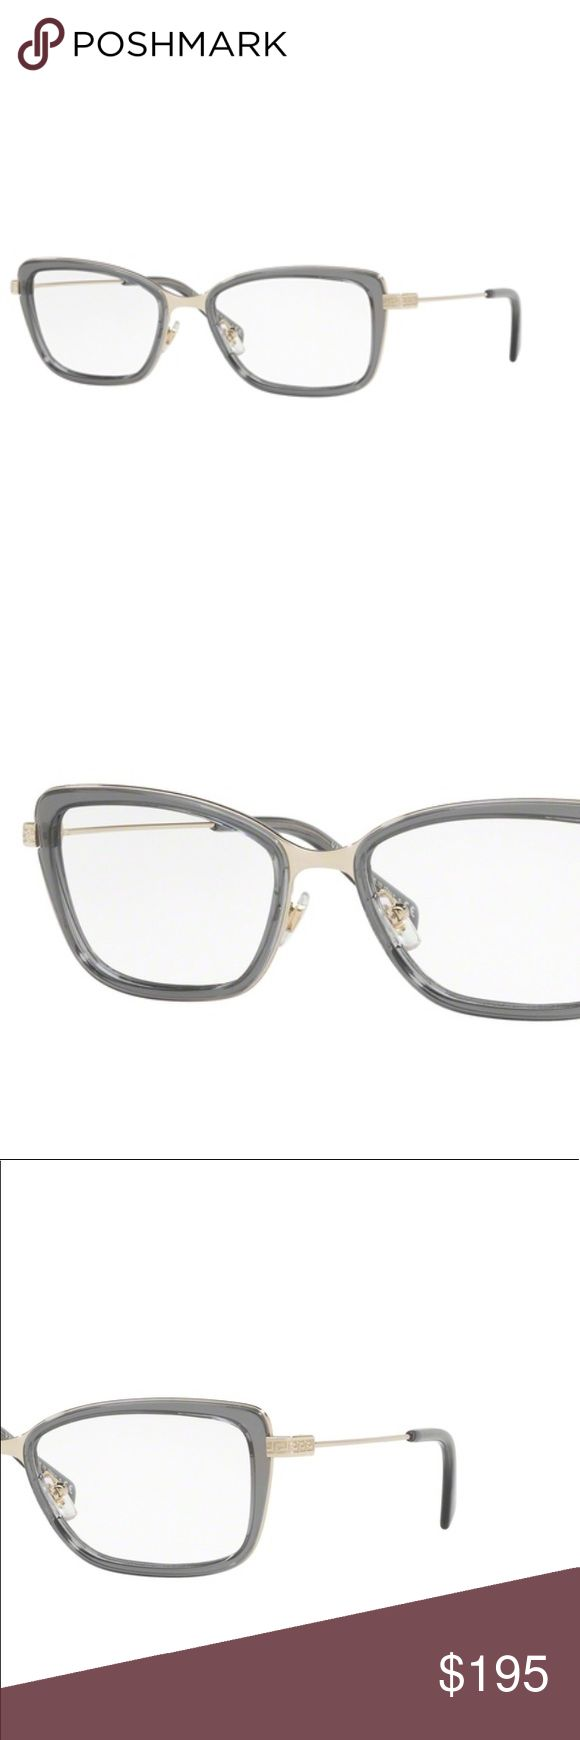 Versace eyeglass frame Versace prescription eyeglass frame with Pale gold and gray details. Versace Accessories